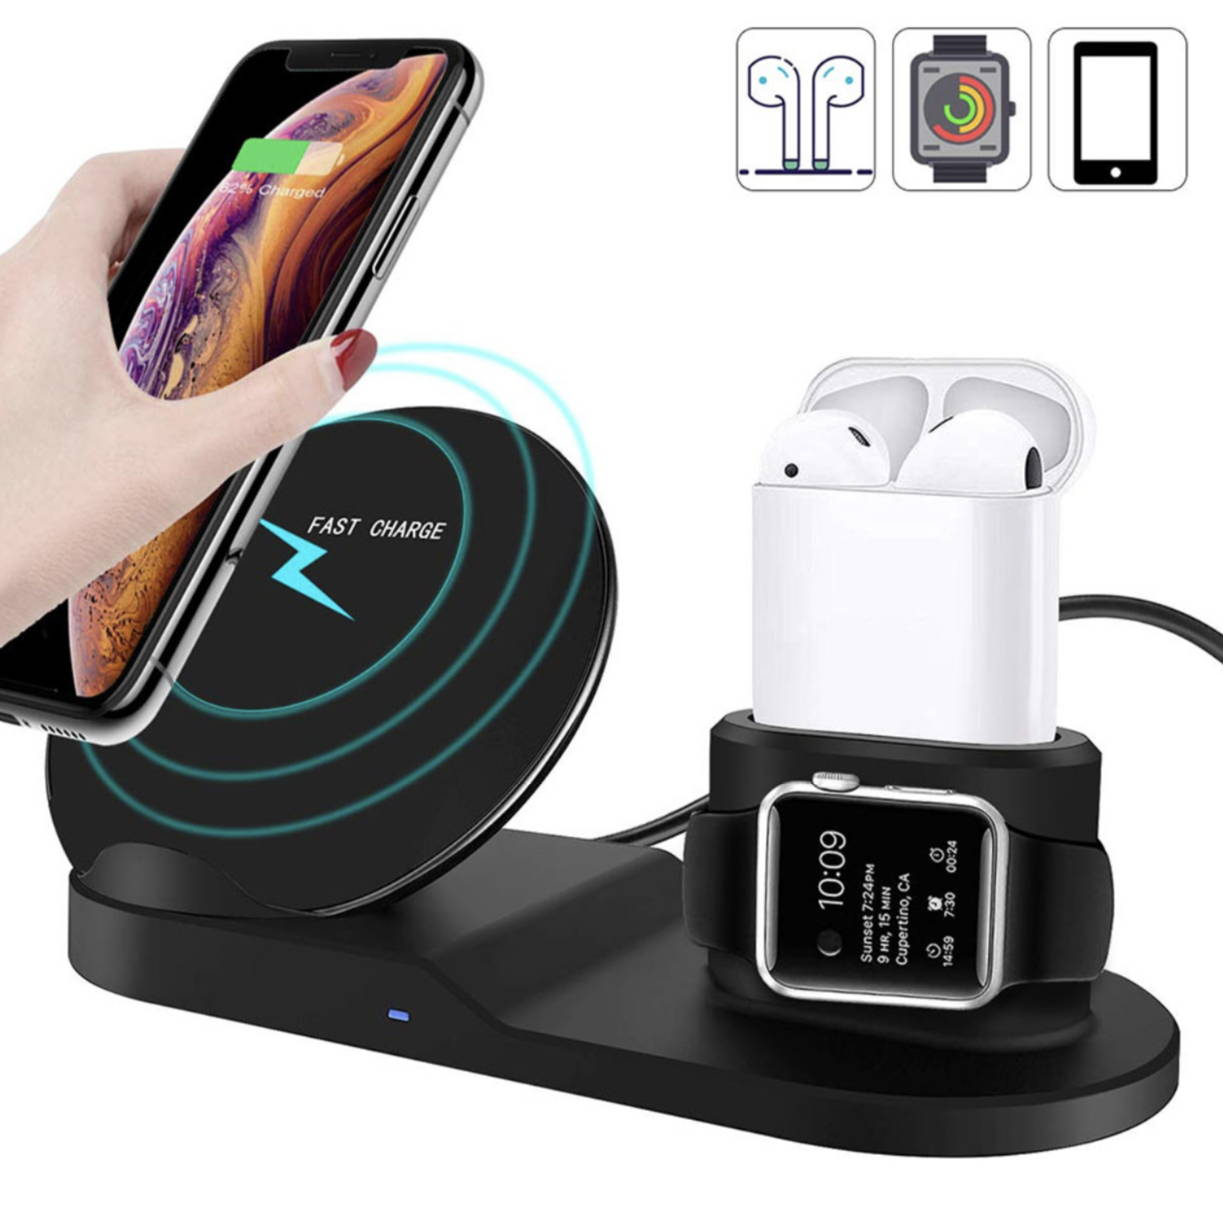 3 in 1 wireless iphone charger